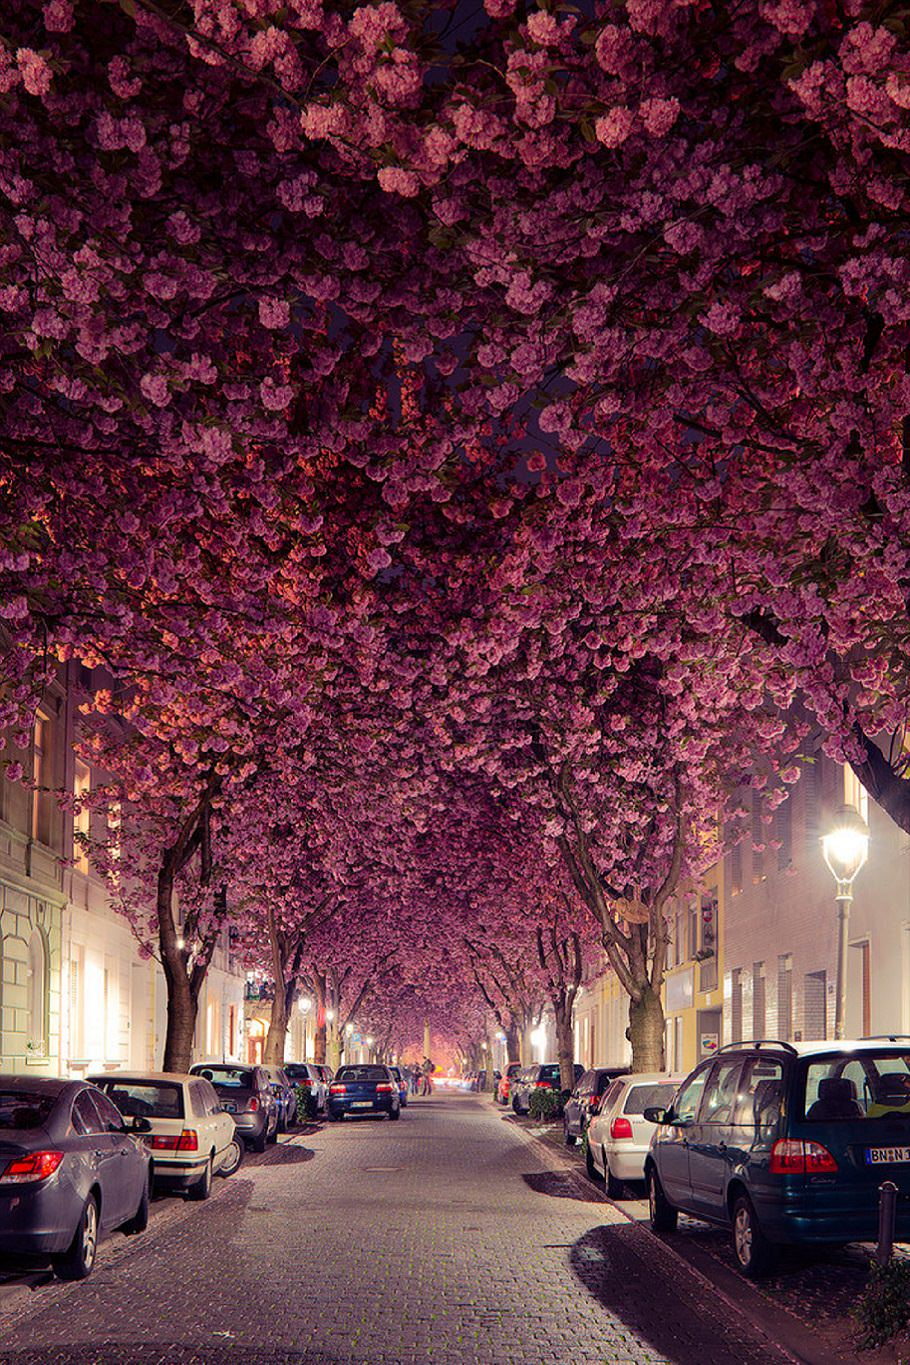 Cherry Blossom Trees in Germany - a5748487 - bit.ly2x1fuxy